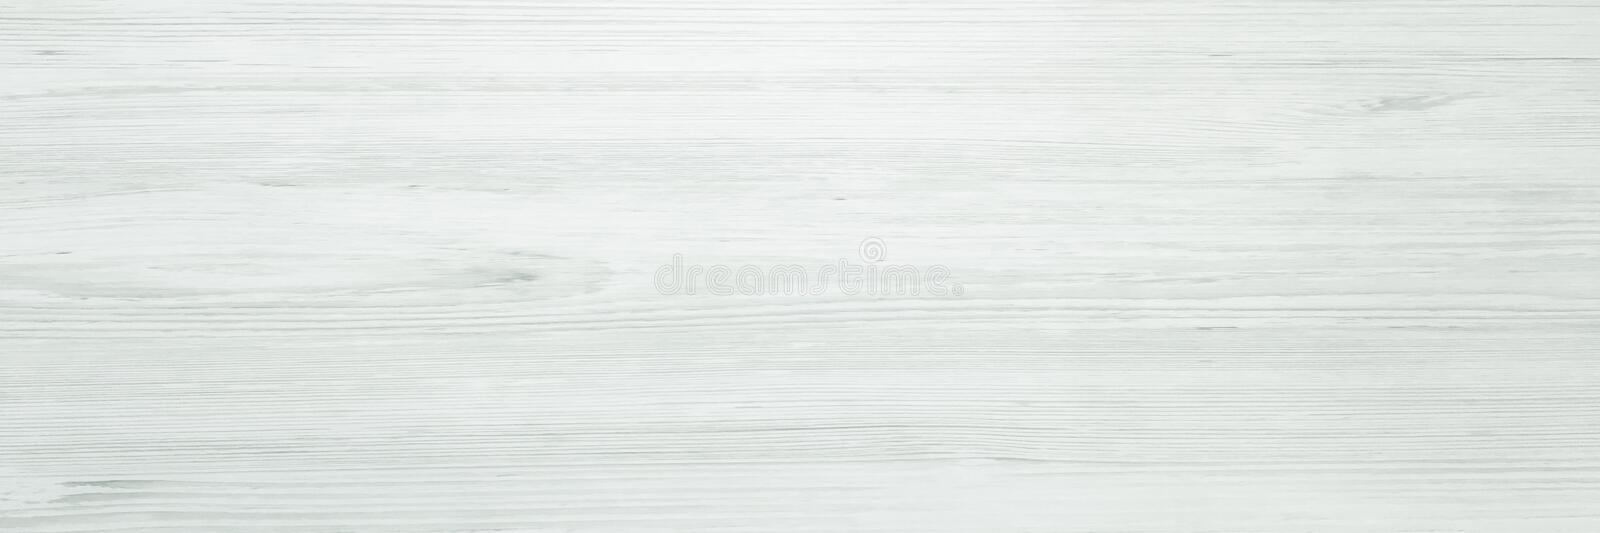 Wood texture background, light weathered rustic oak. faded wooden varnished paint showing woodgrain texture. hardwood. Washed planks pattern table top view royalty free stock photo